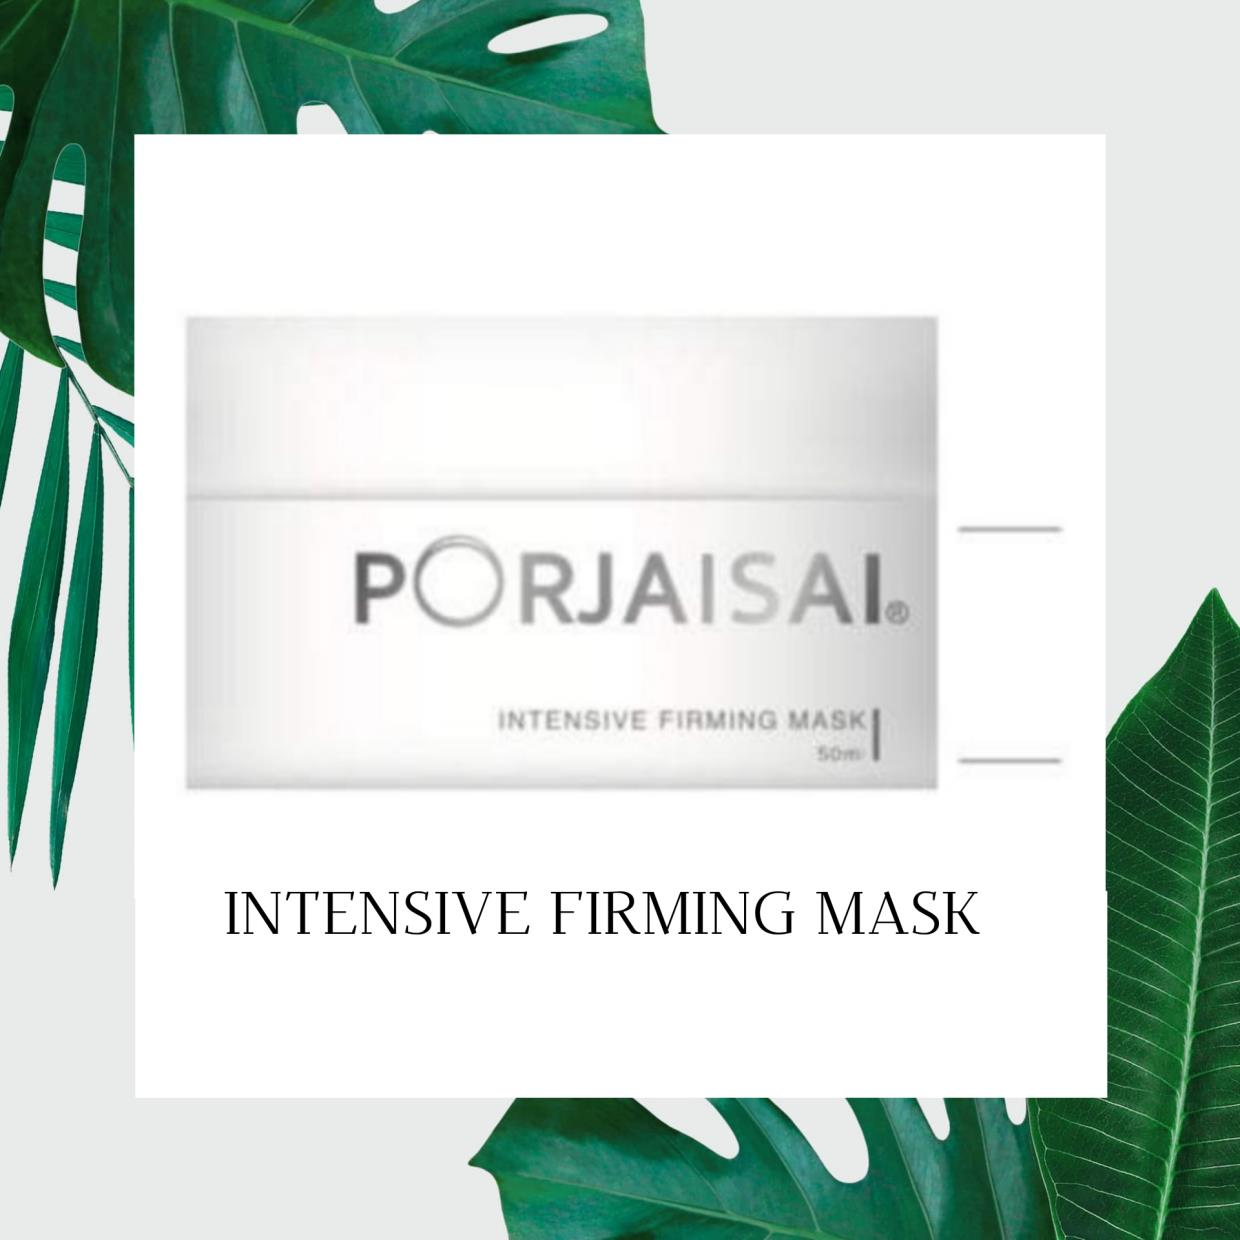 INTENSIVE FIRMING MASK